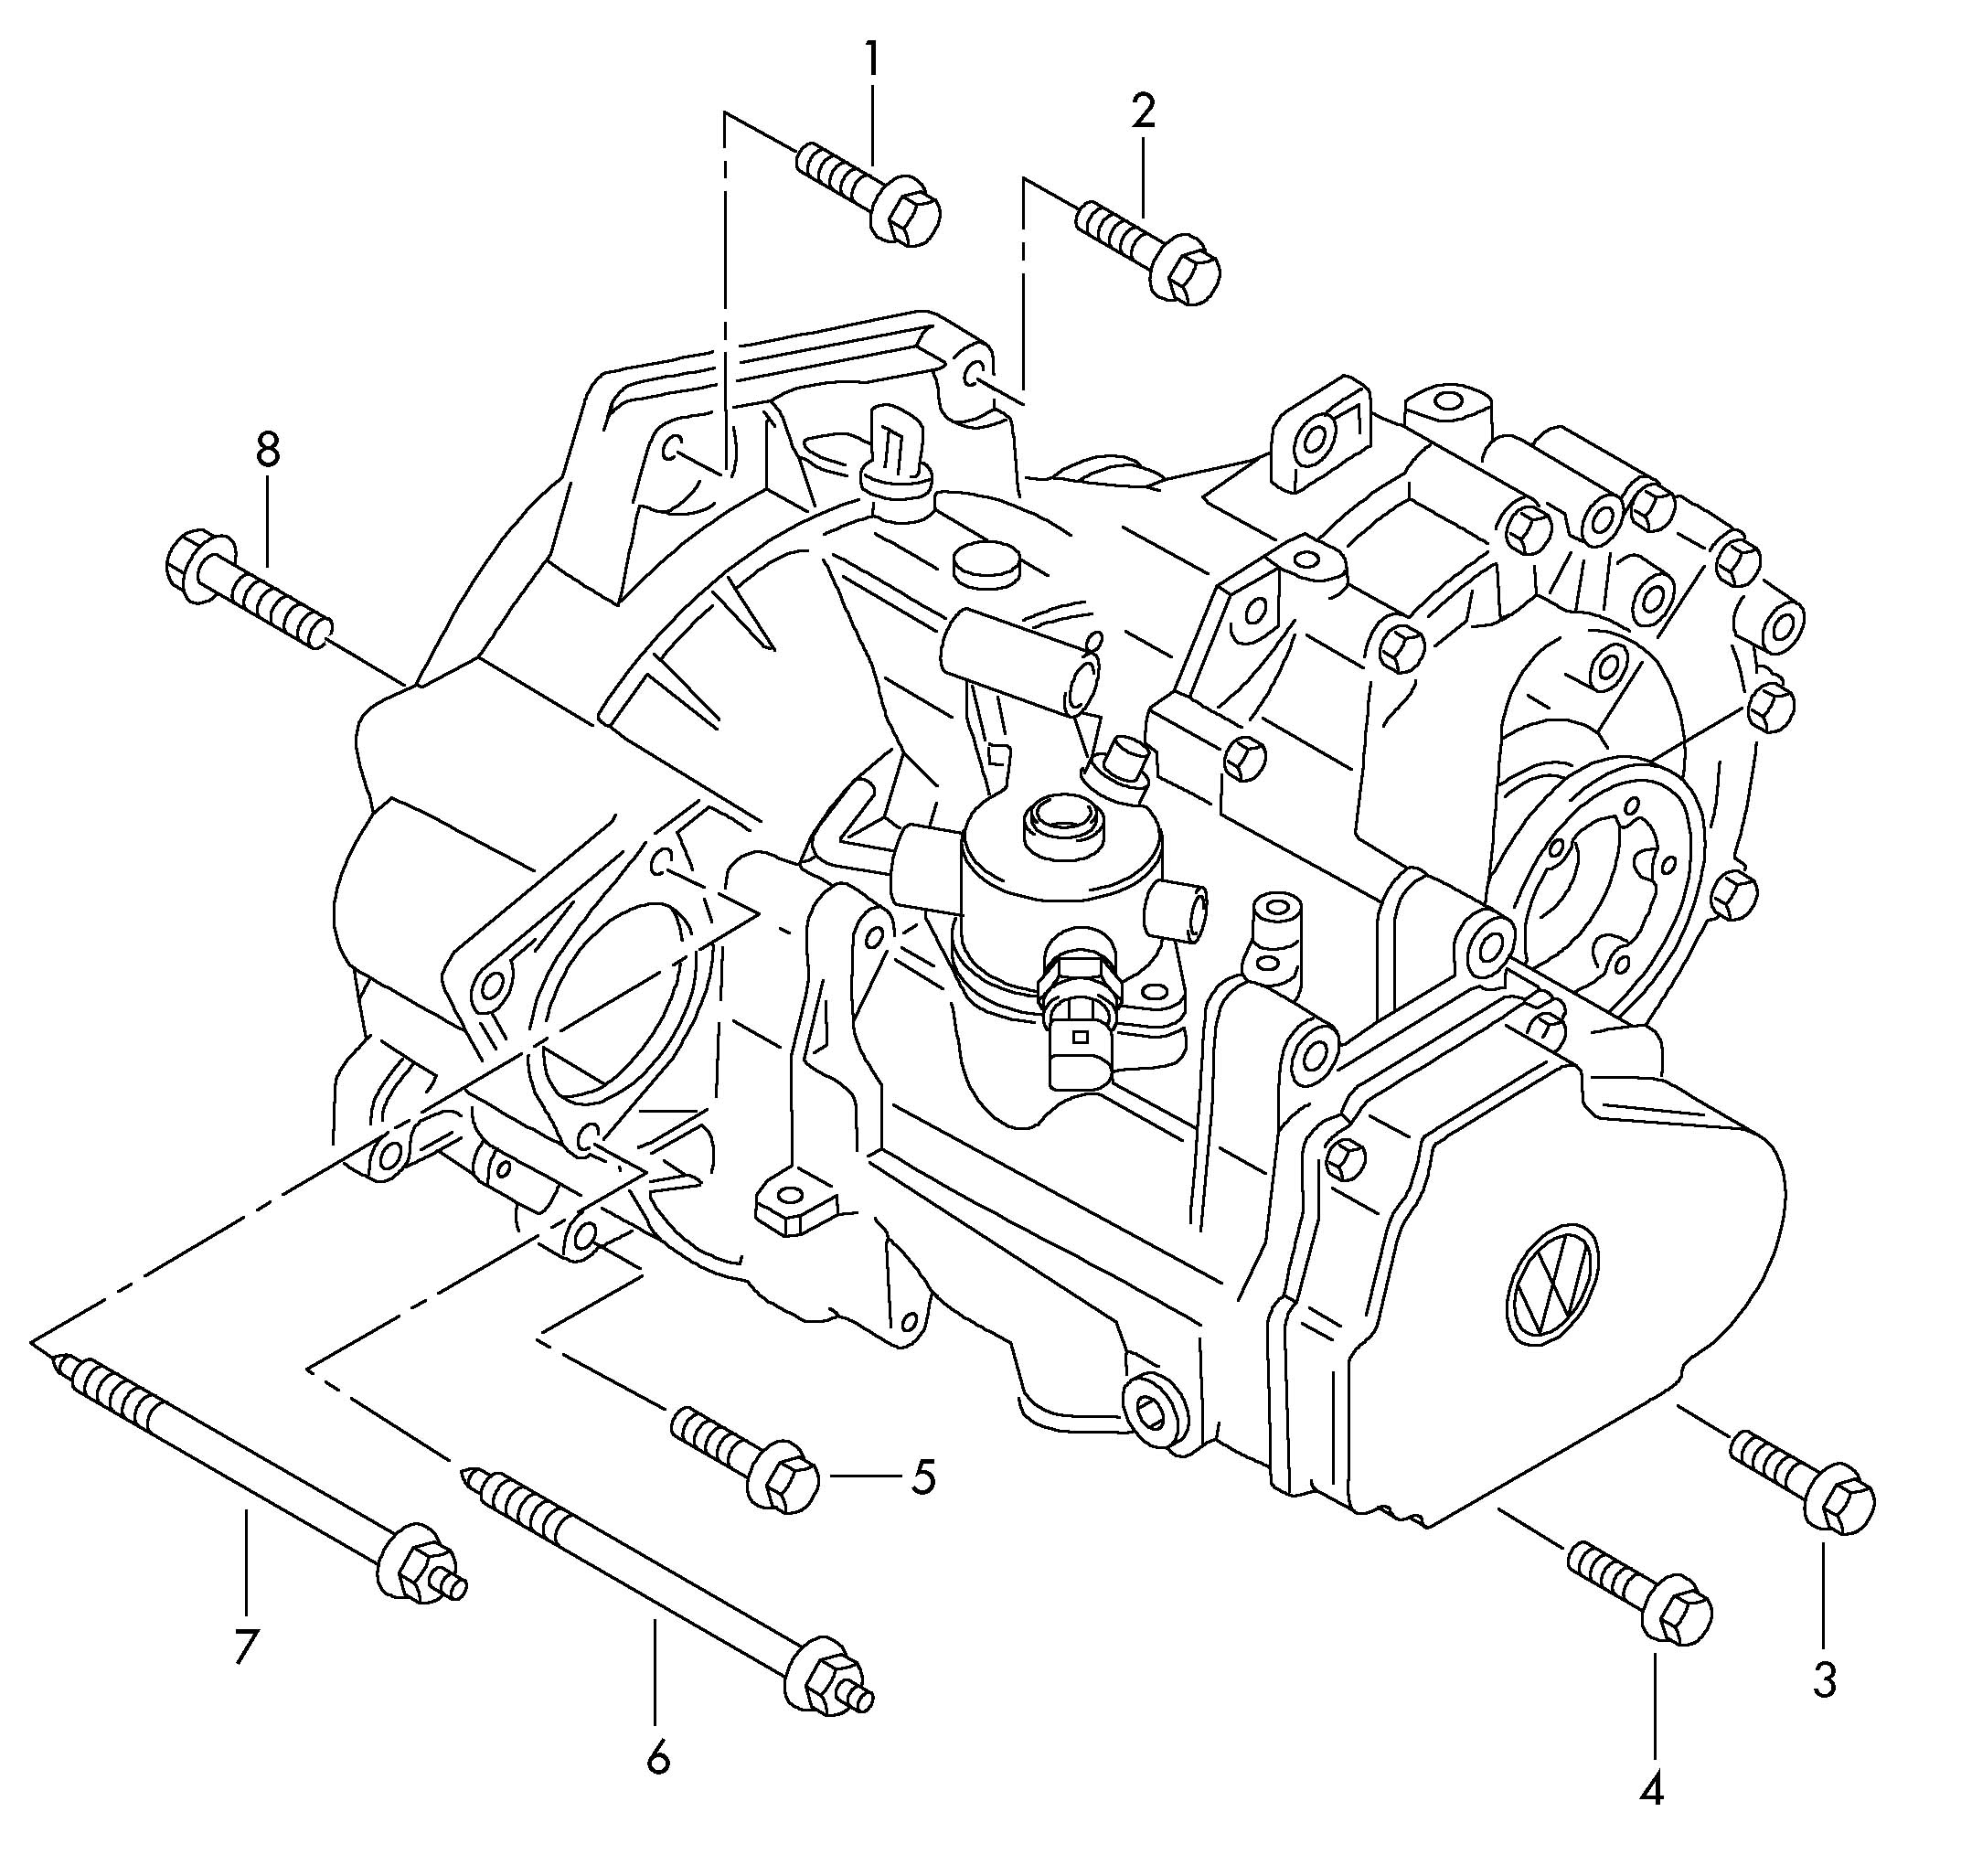 Volkswagen Jetta Mounting Parts For Engine And